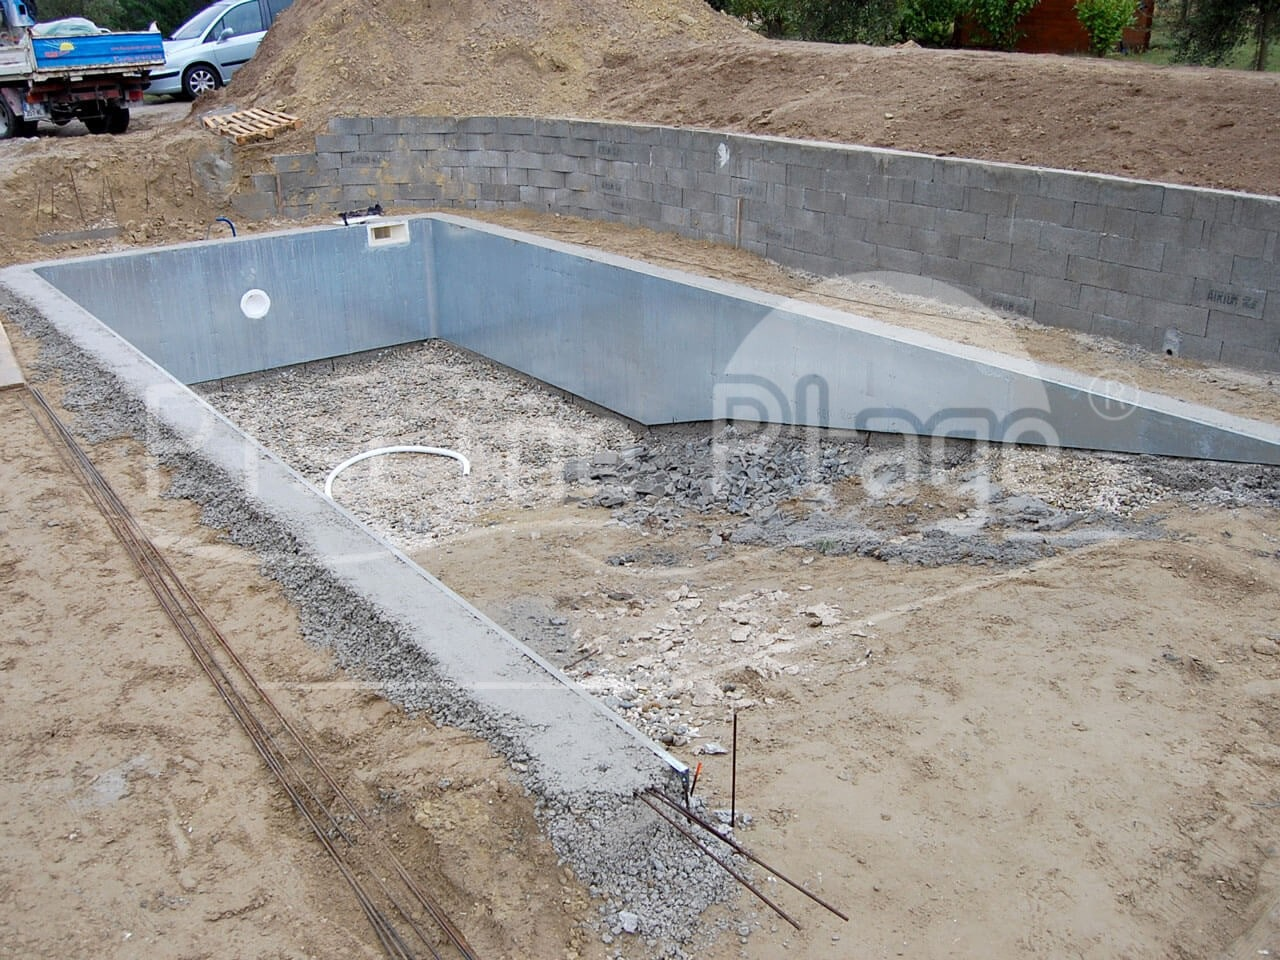 Notre technique de construction piscine plage for Piscine construction